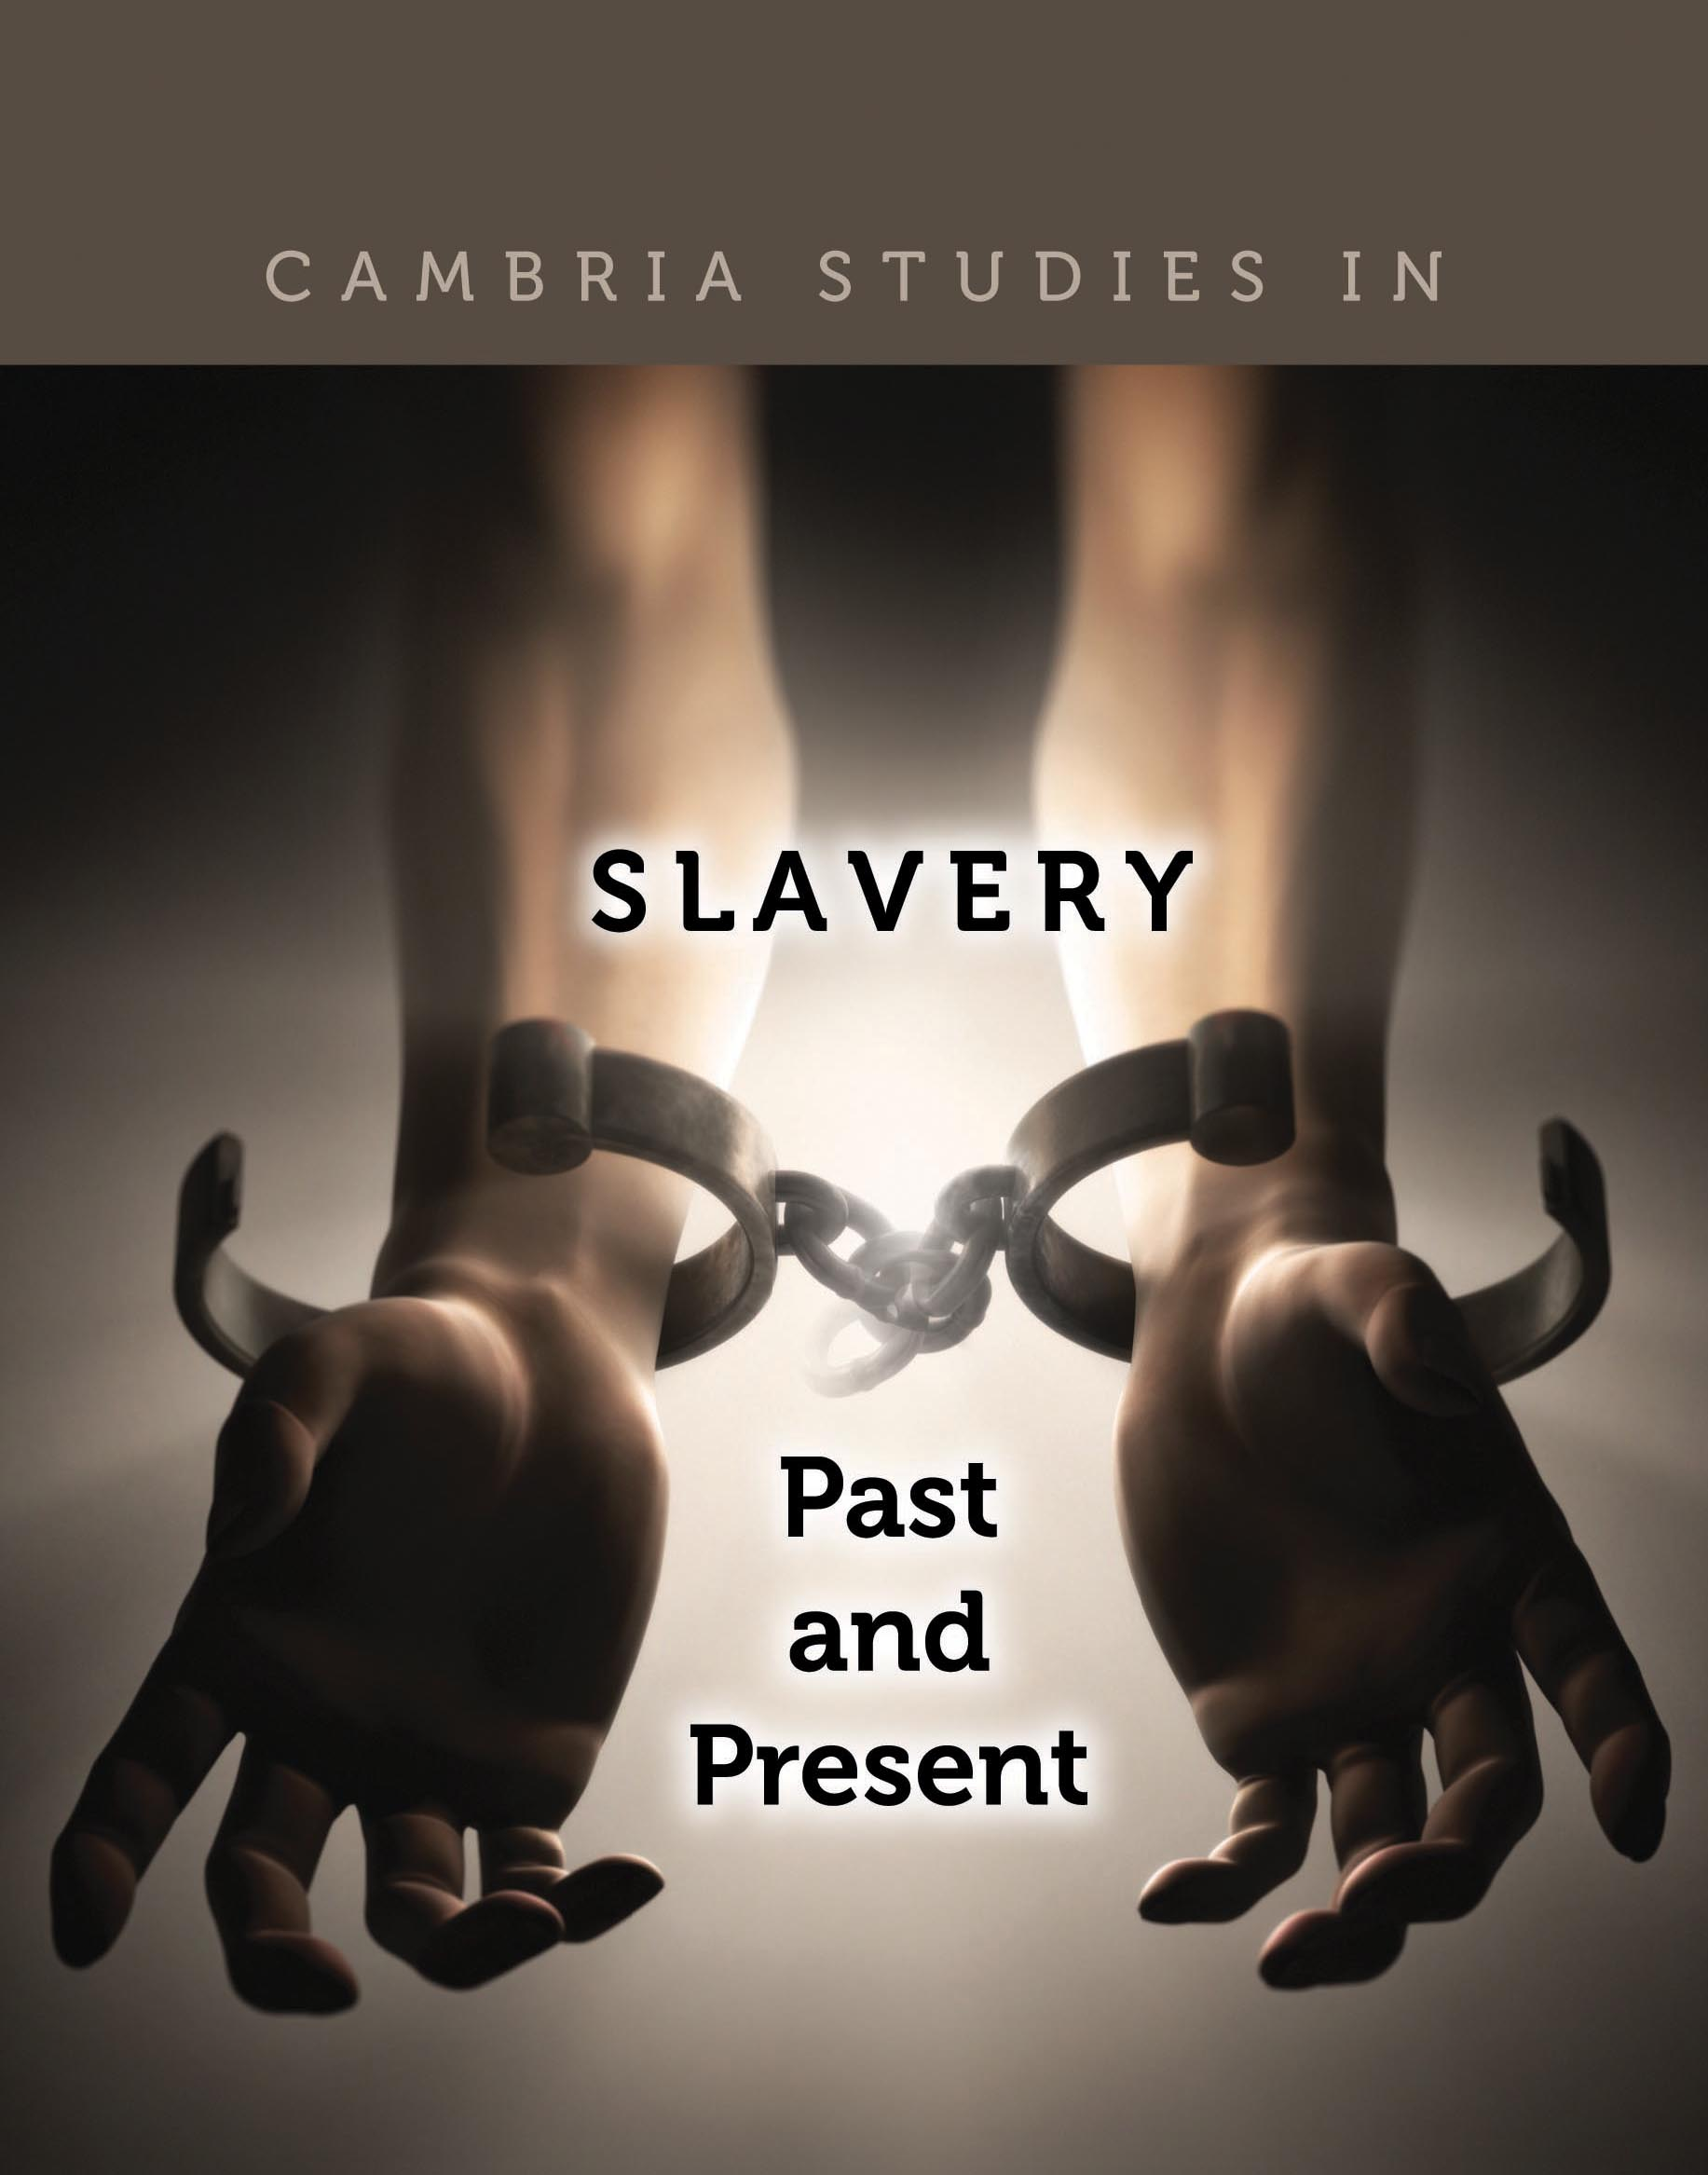 Cambria Studies in Slavery - Past and Present